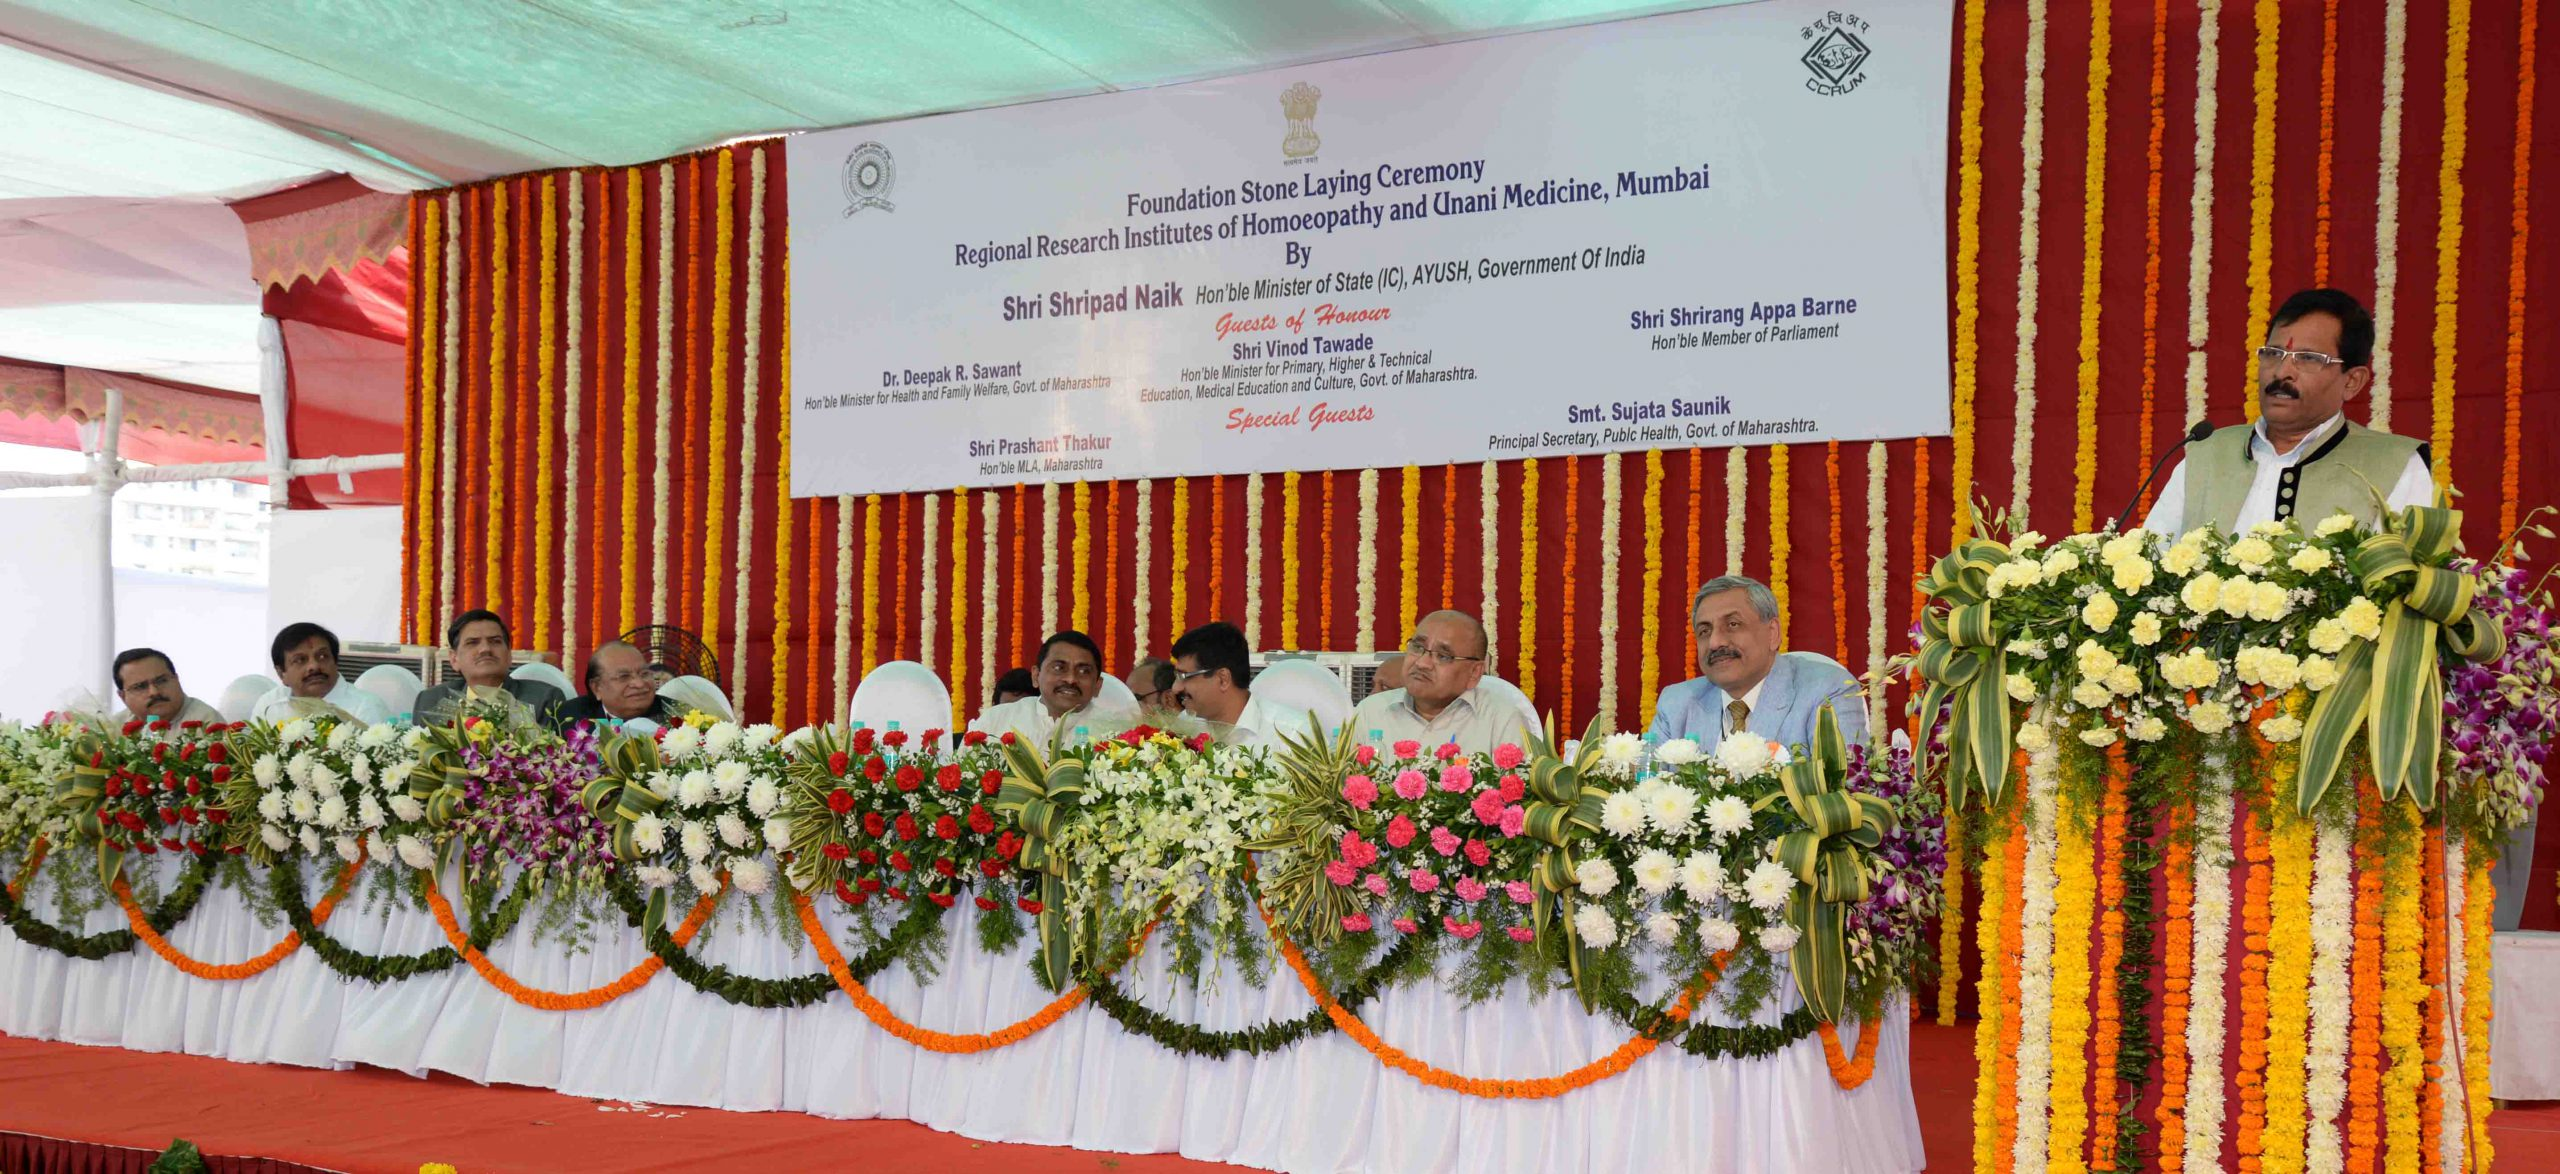 Foundation Stone Laying Ceremony, Regional Research Institutes of Homoeopathy and Unani Medicine, Mumbai